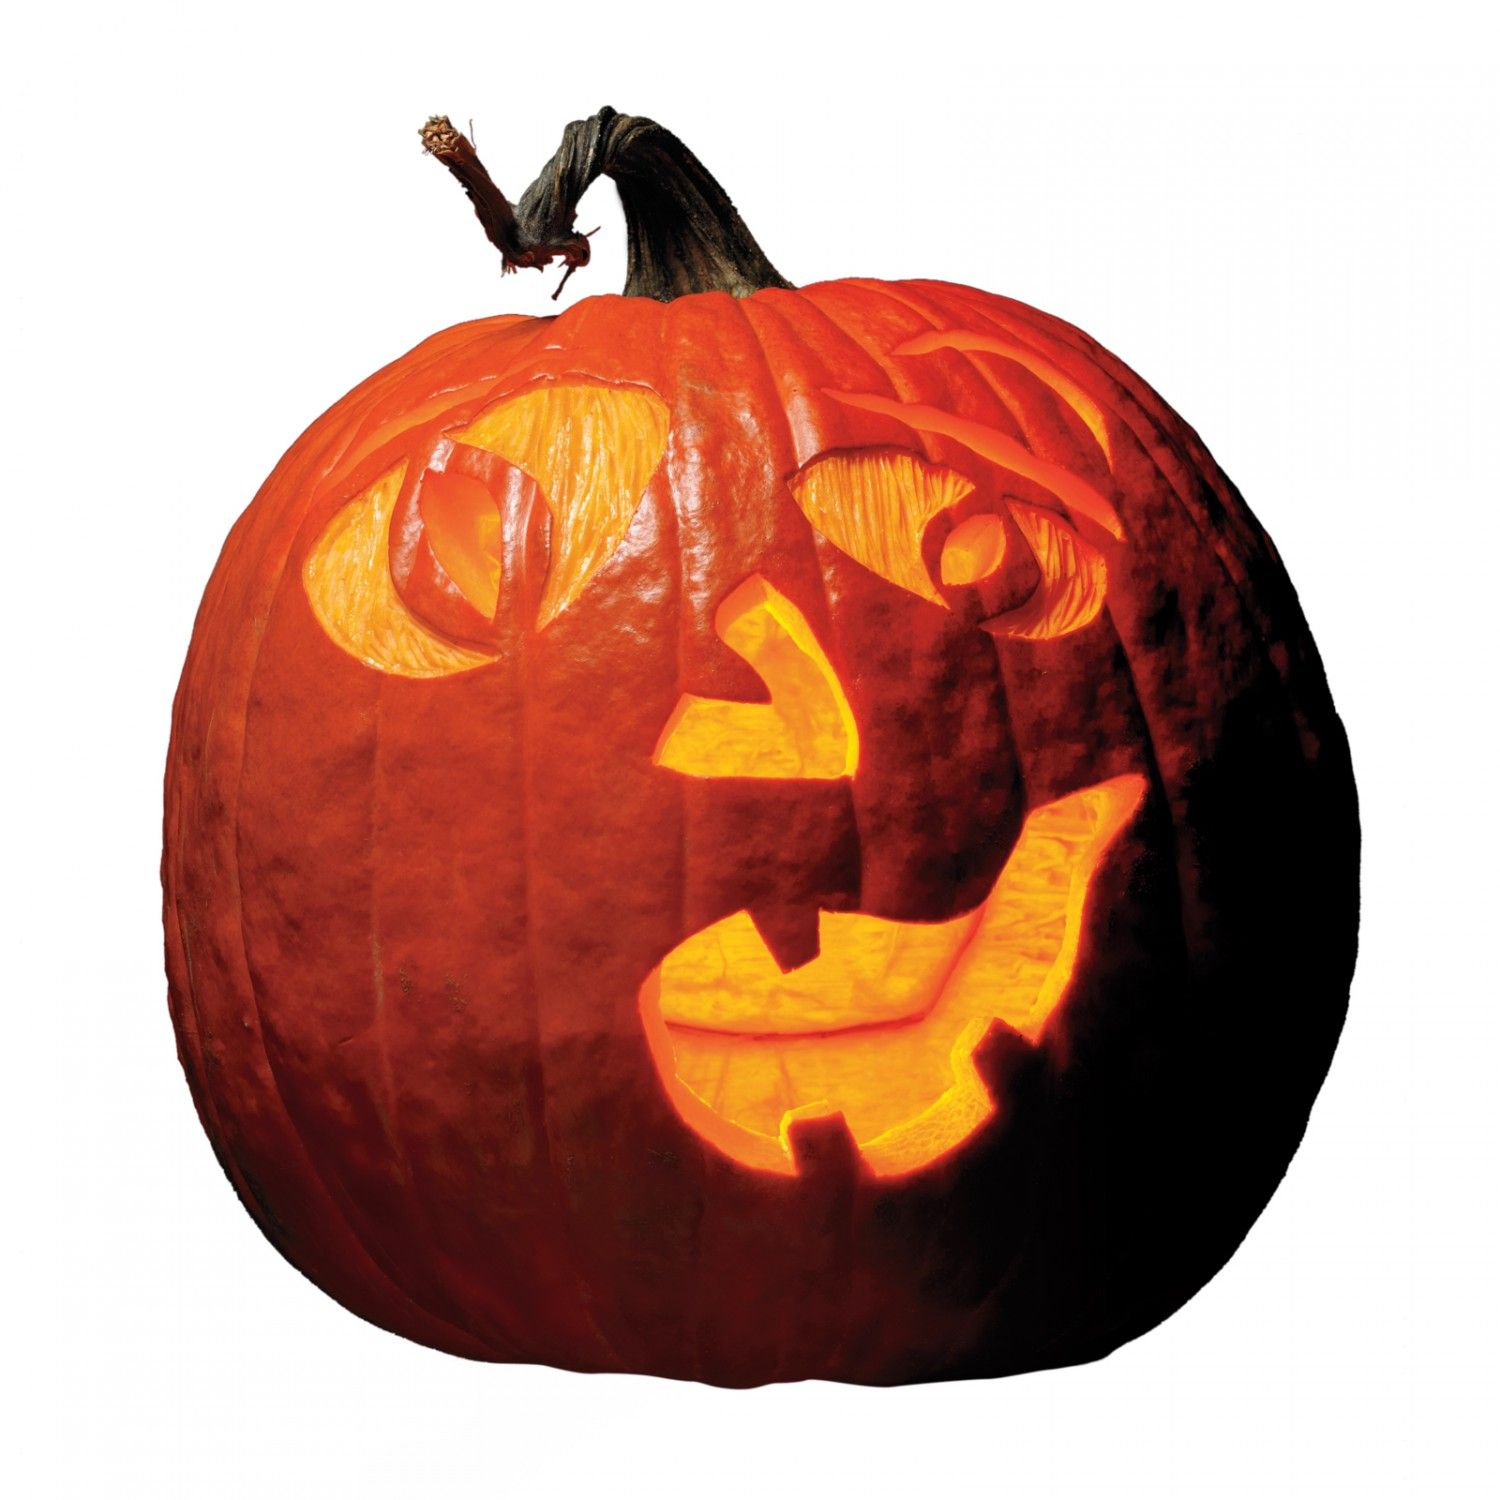 Funny Face Pumpkins Holiday s Pinterest